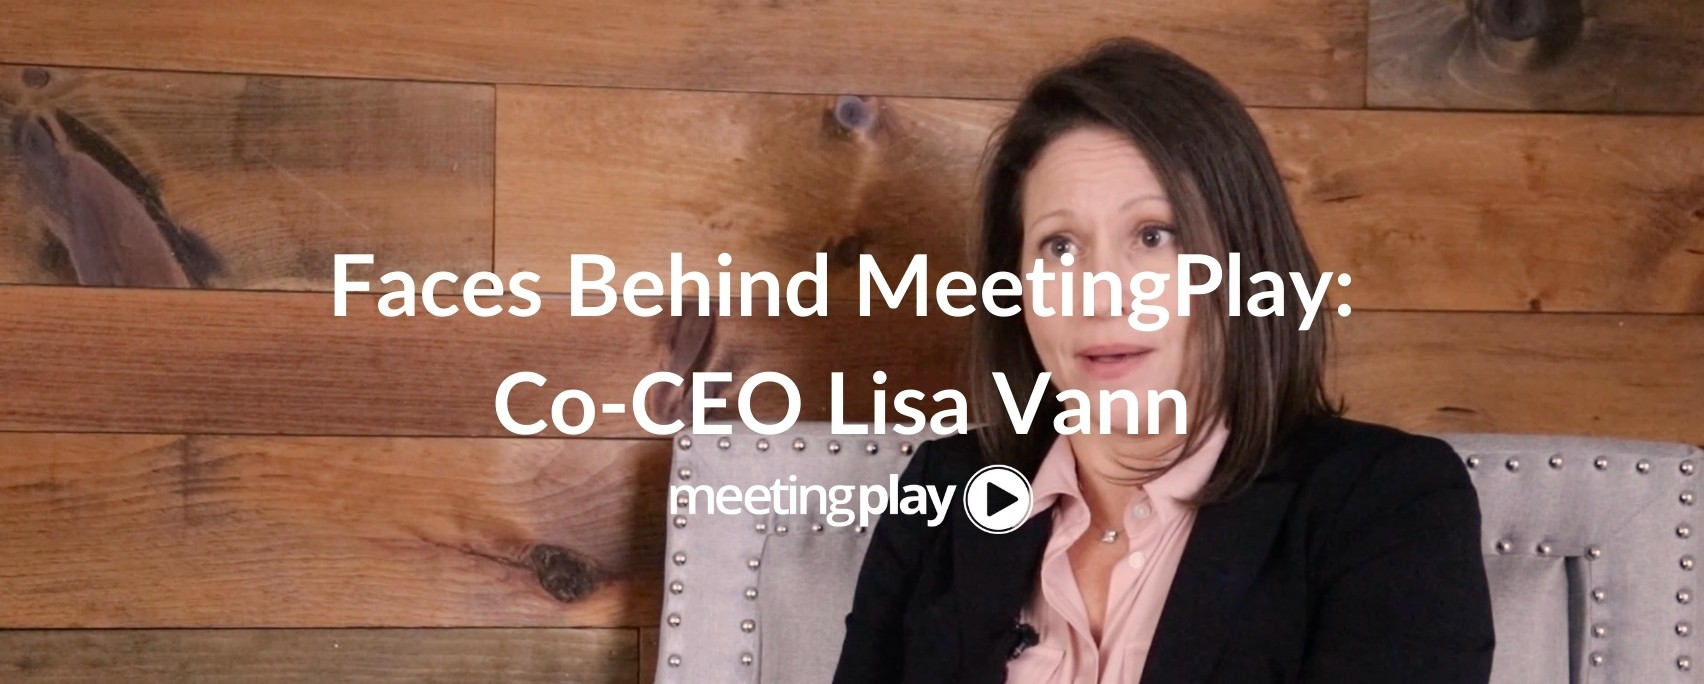 Faces Behind MeetingPlay: Meet Lisa Vann, Co-CEO